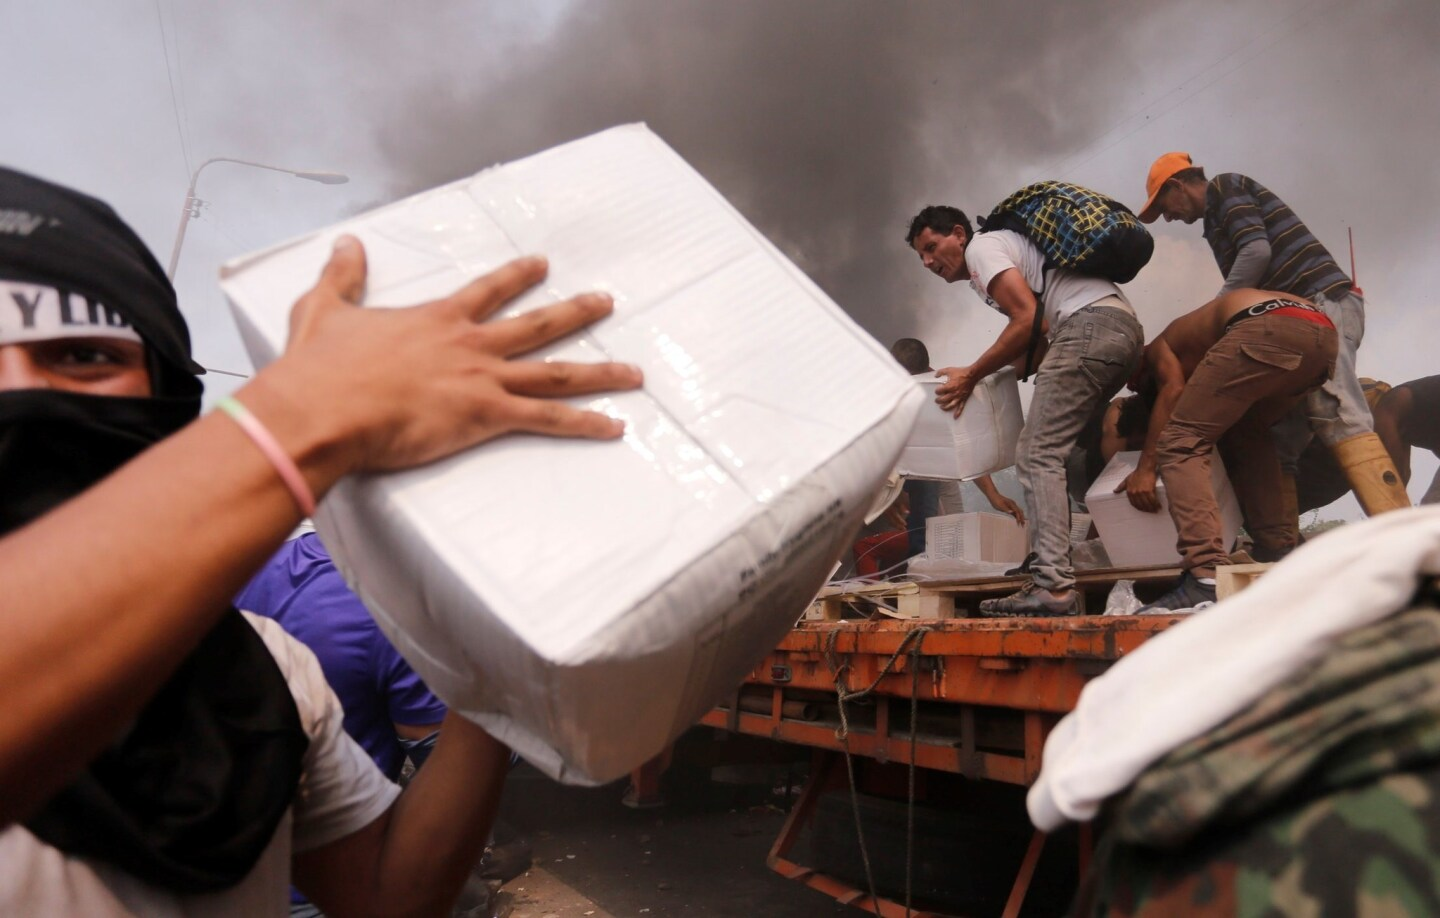 People try to take part of the humanitarian aid from a truck that was set on fire in Urena, Venezuela, on Saturday. Two trucks with aid requested by the opposition were burned by Venezuelan security forces at a border bridge with Colombia.